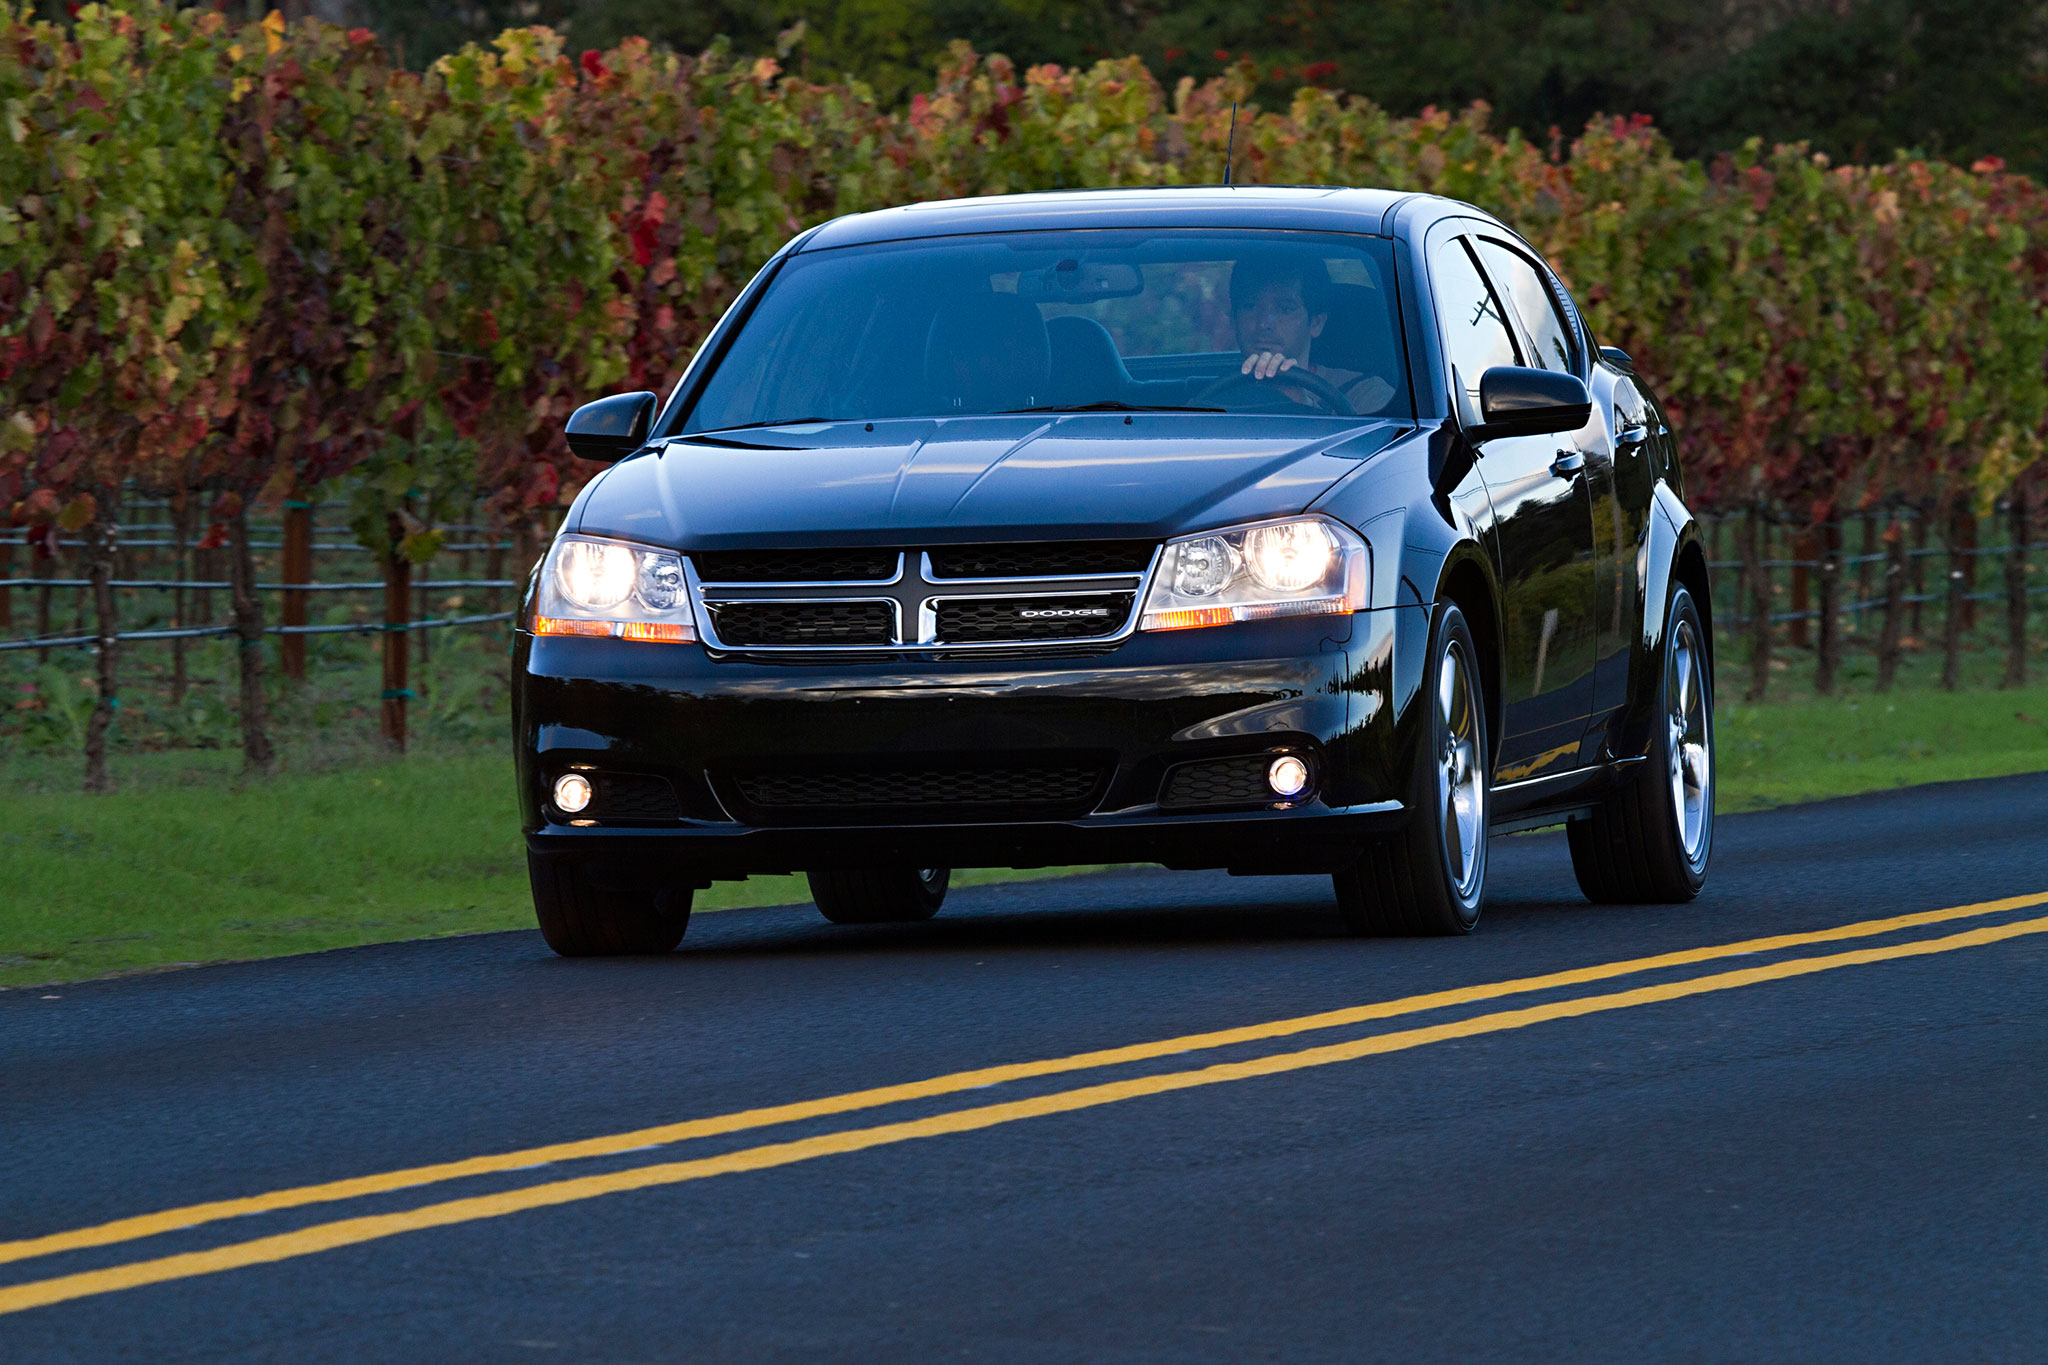 2012 dodge avenger r/t - first look - automobile magazine